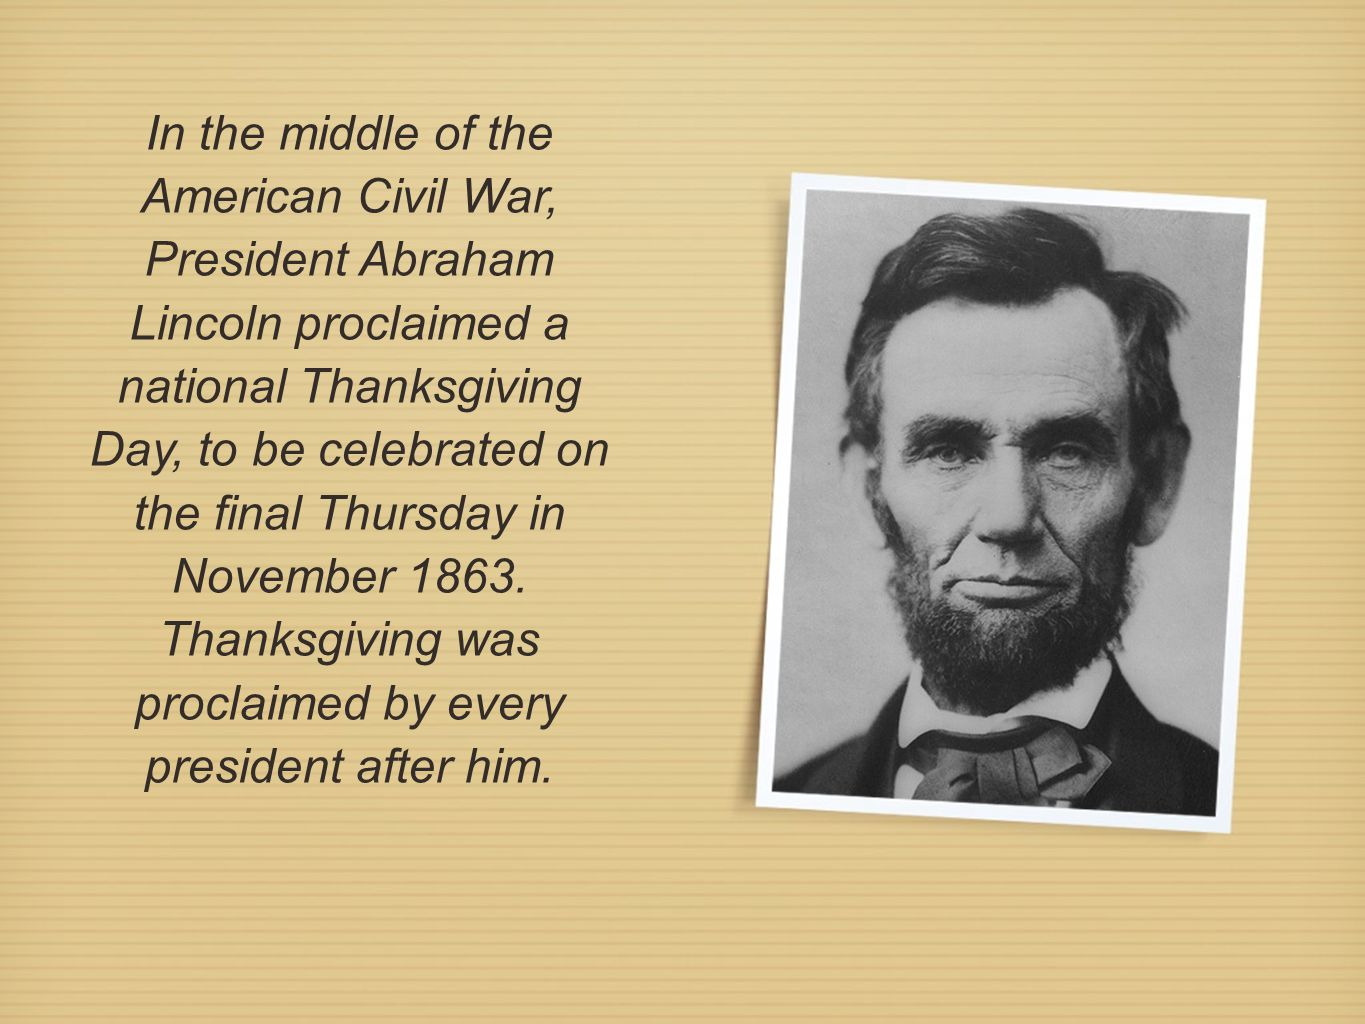 In the middle of the American Civil War, President Abraham Lincoln proclaimed a national Thanksgiving Day, to be celebrated on the final Thursday in N